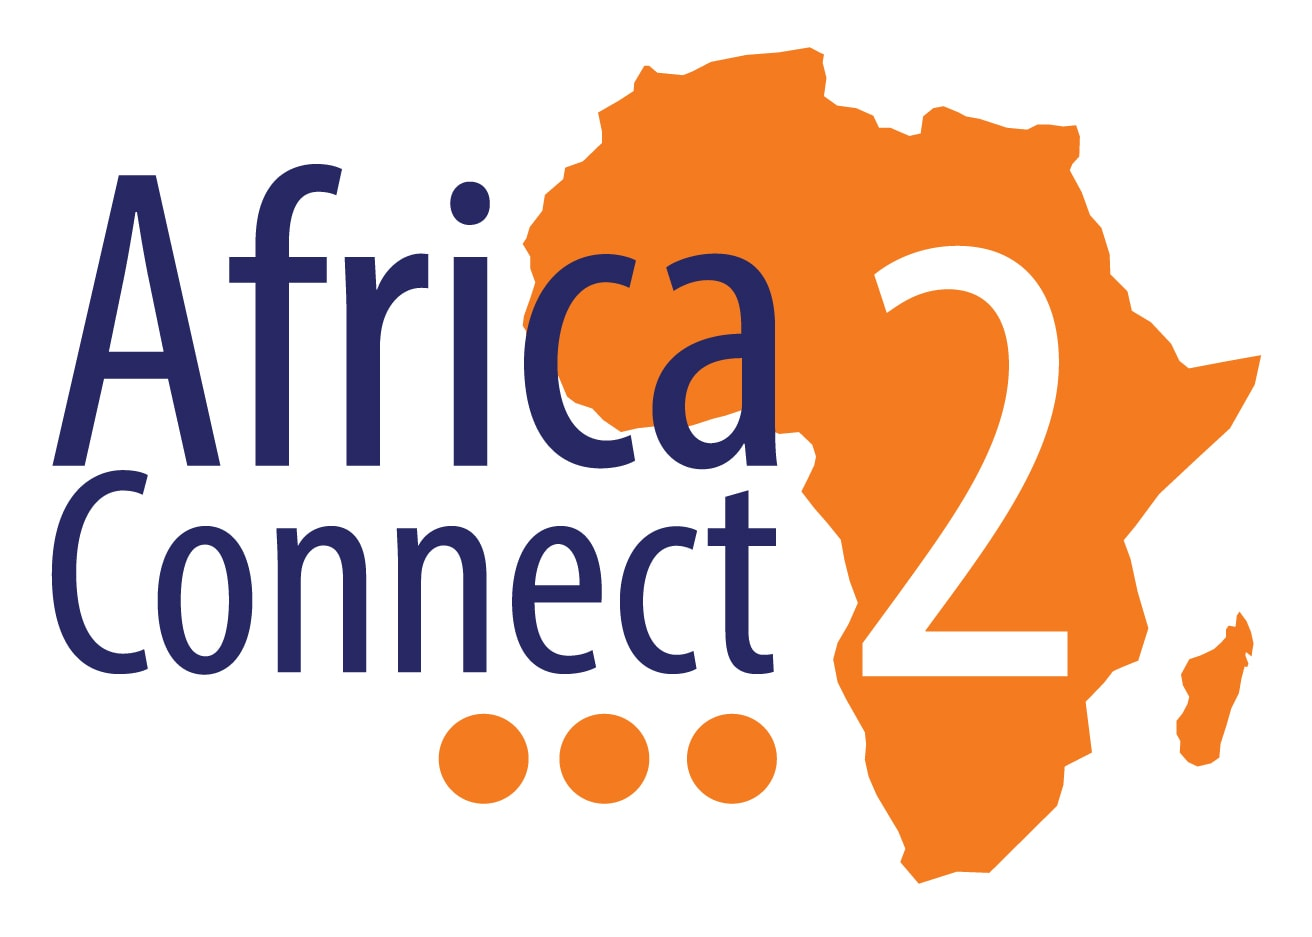 AfricaConnect2